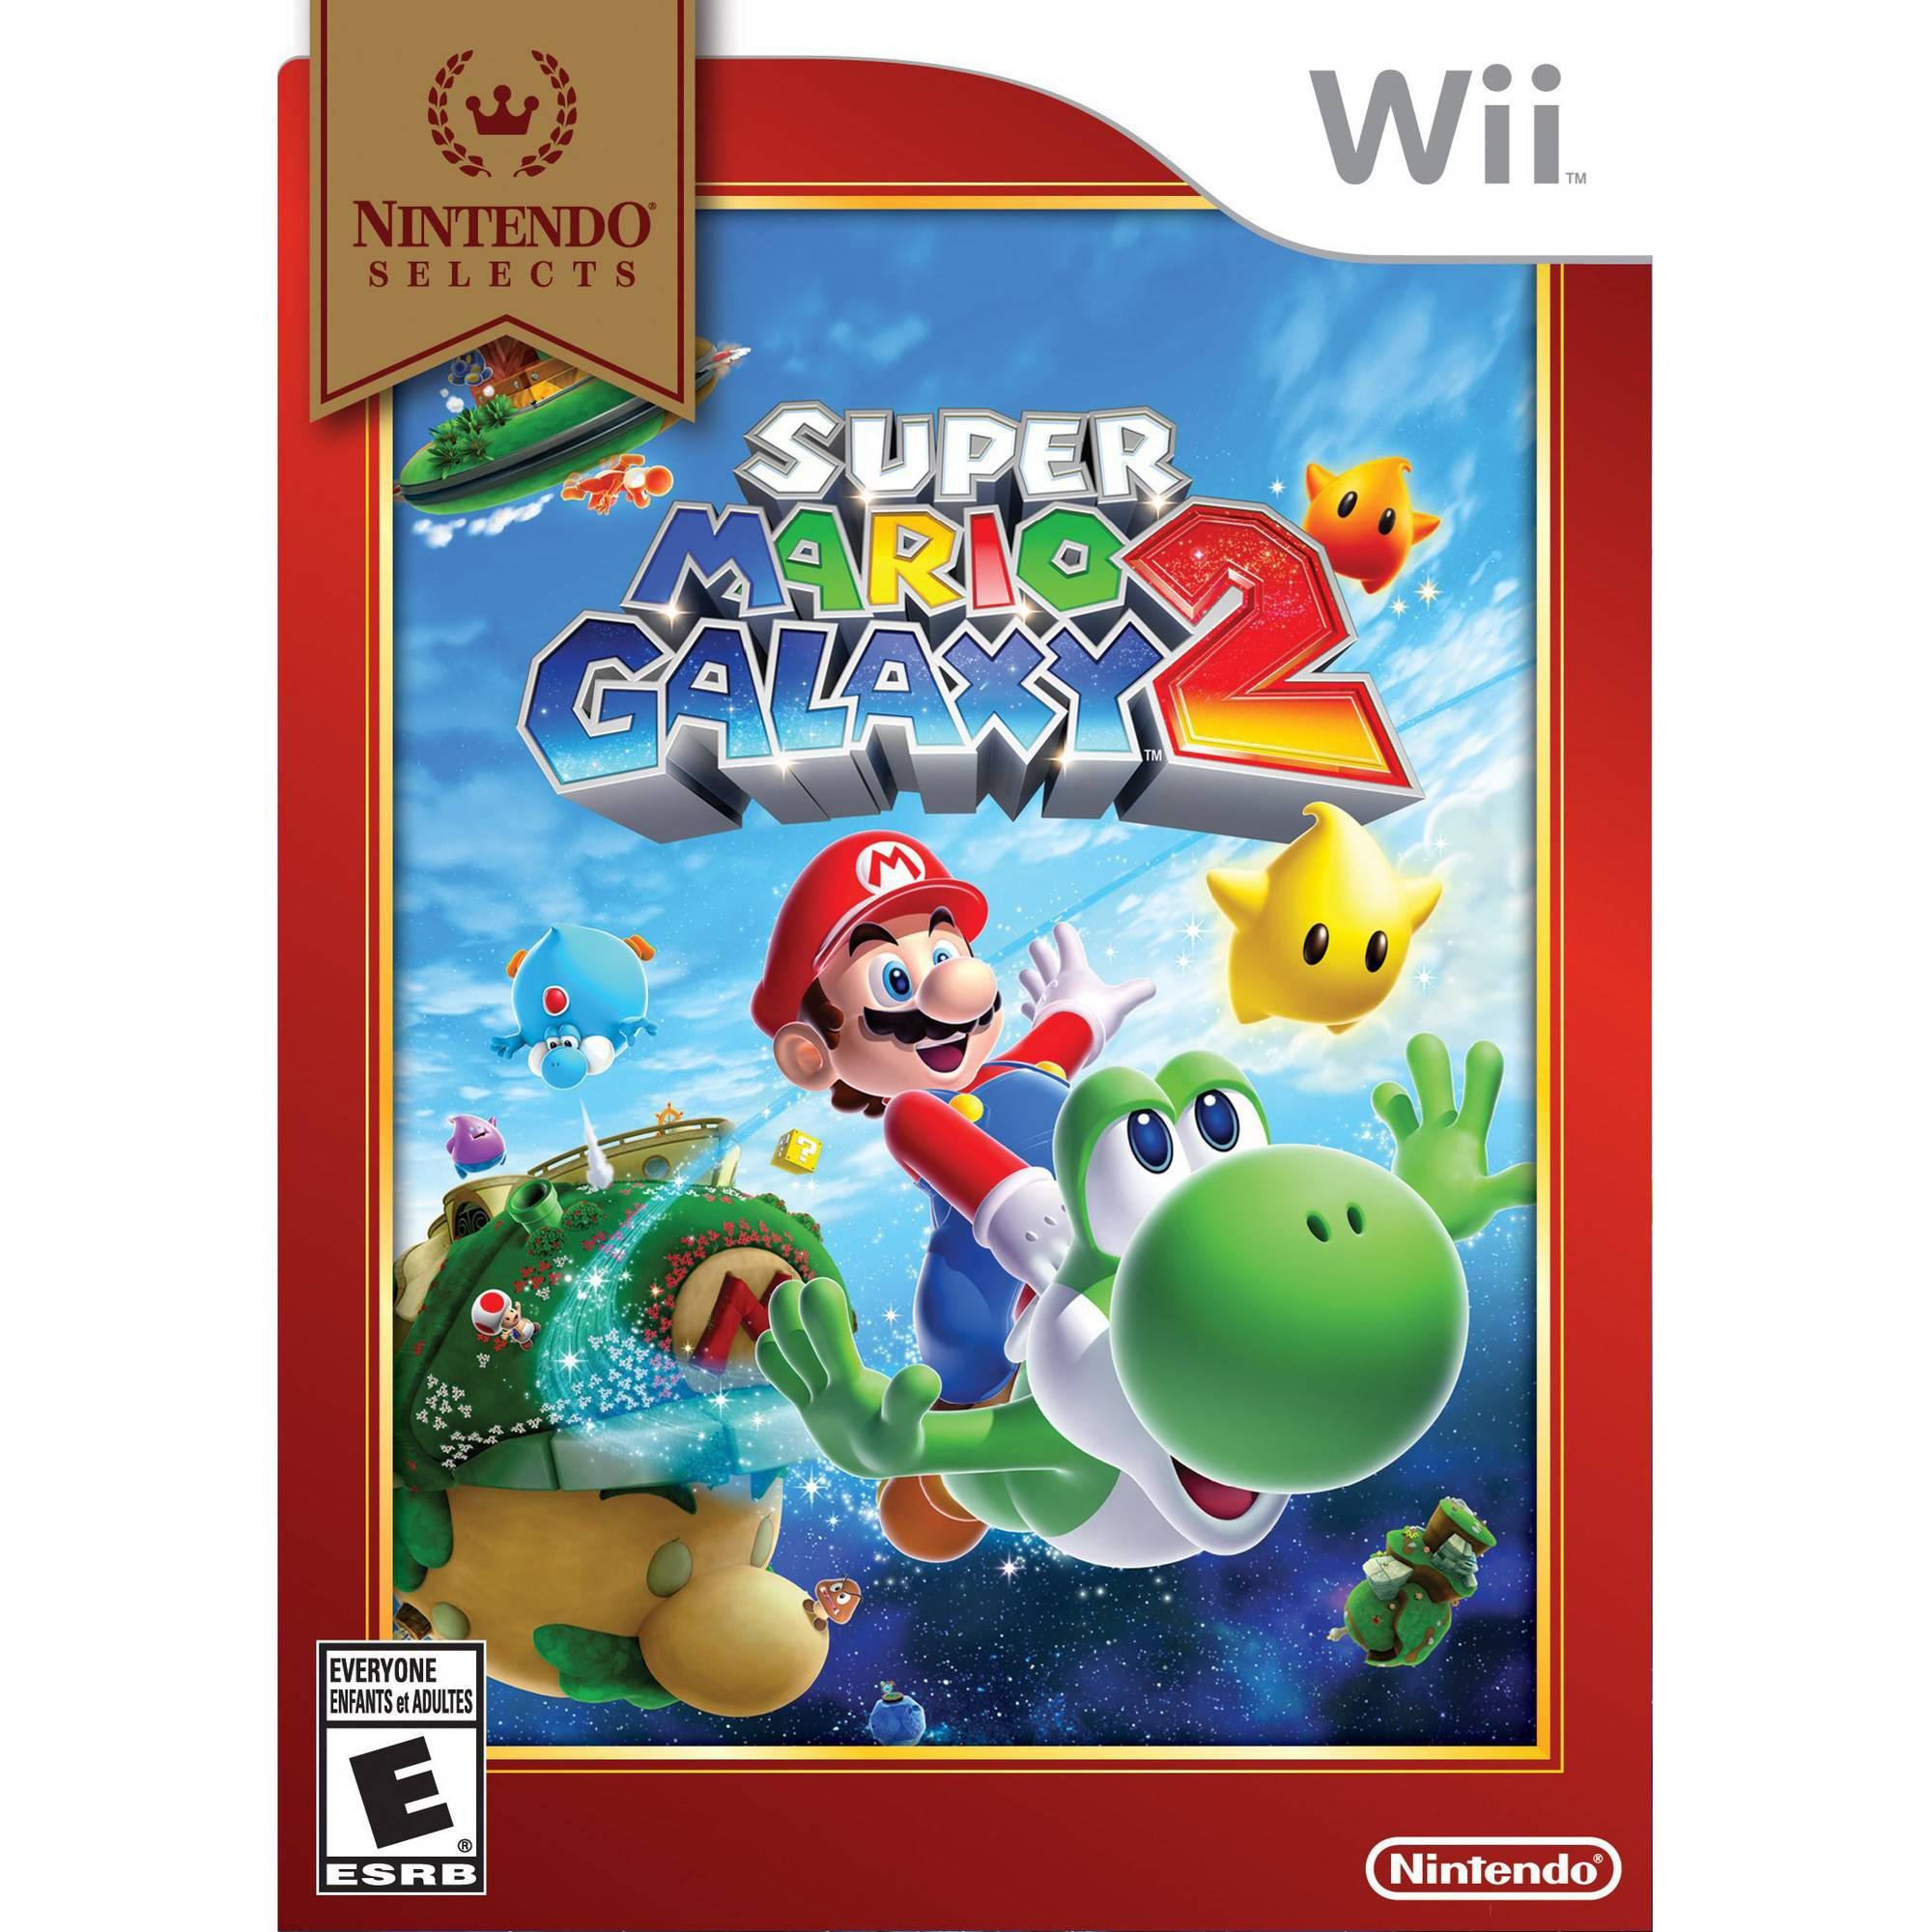 Super Mario Galaxy 2 - Nintendo Selects (Wii U)